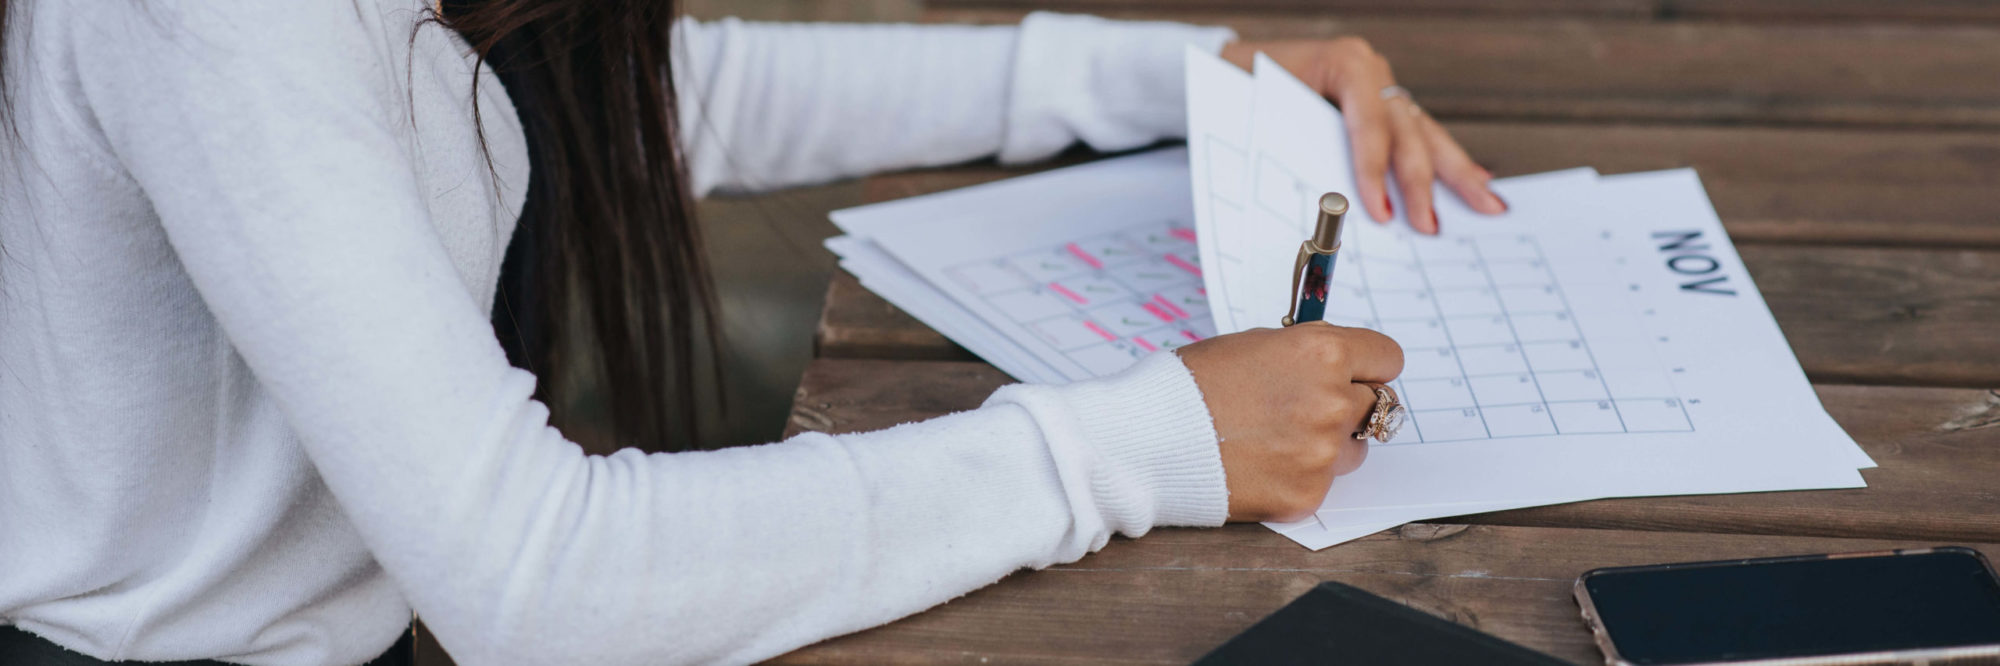 5 Tips for Creating Effective Hybrid Work Schedules